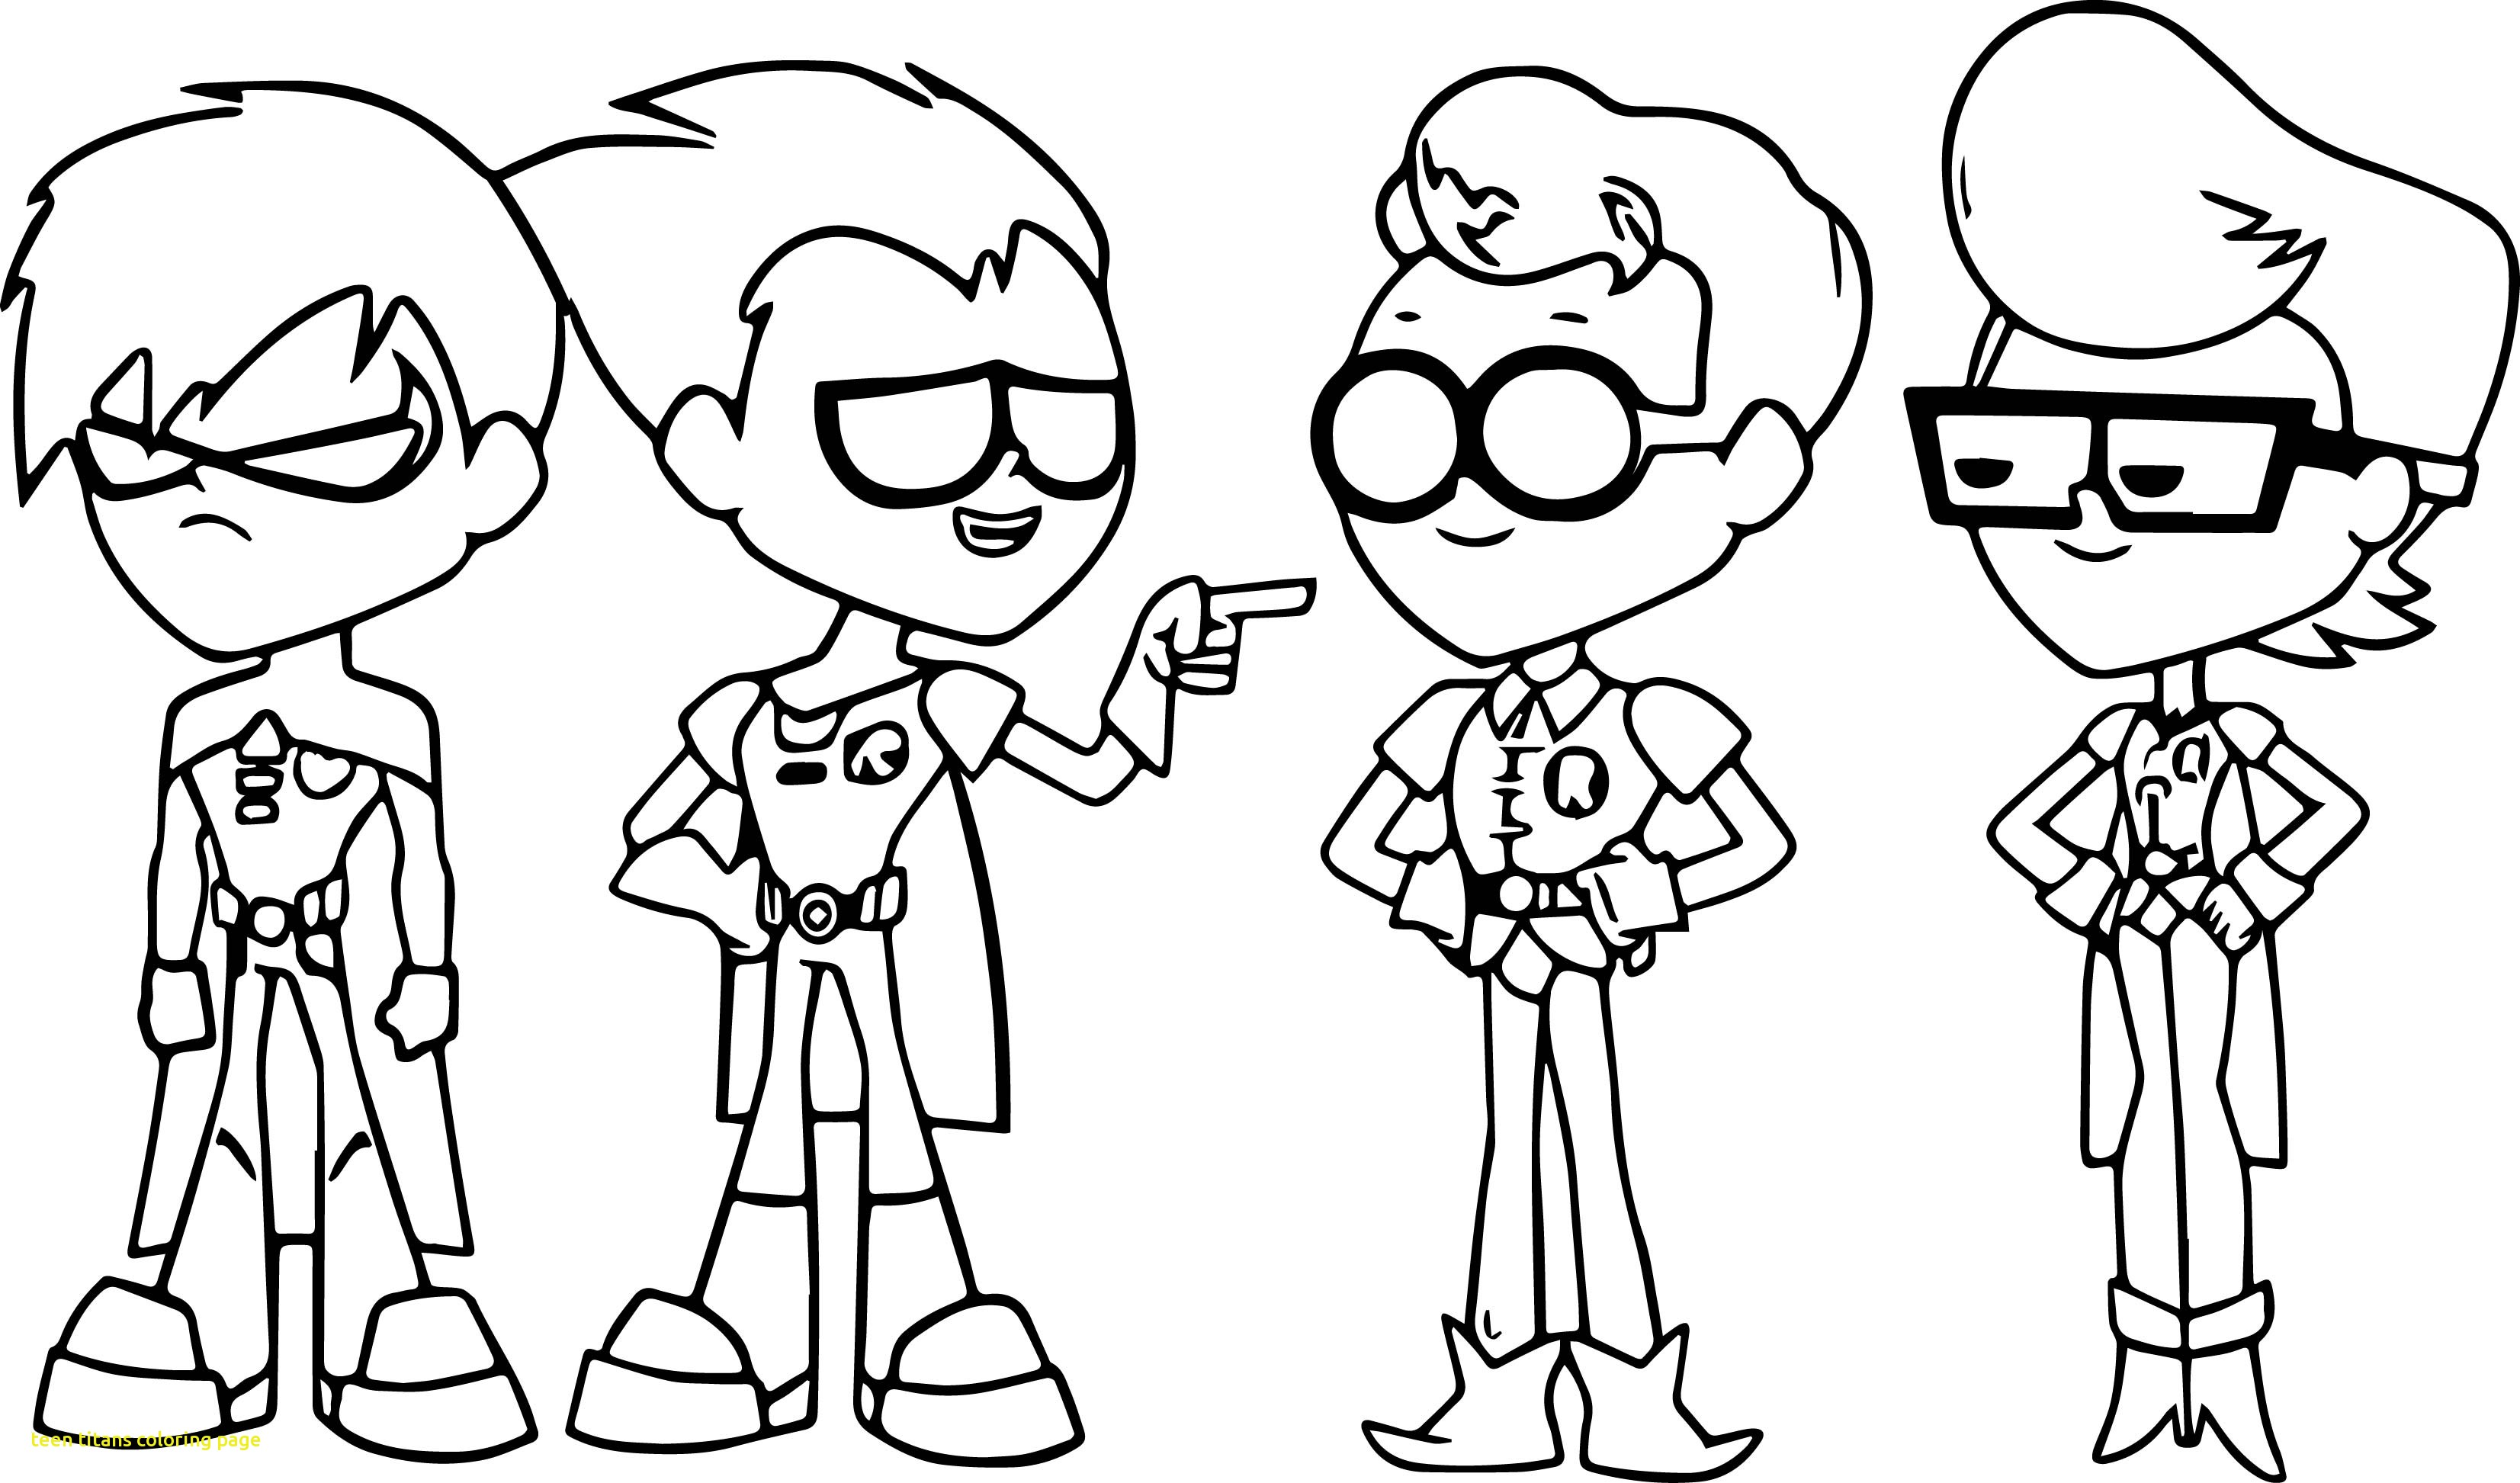 3305x1945 Teen Titans Coloring Page With Image Teen Titans Go Episode